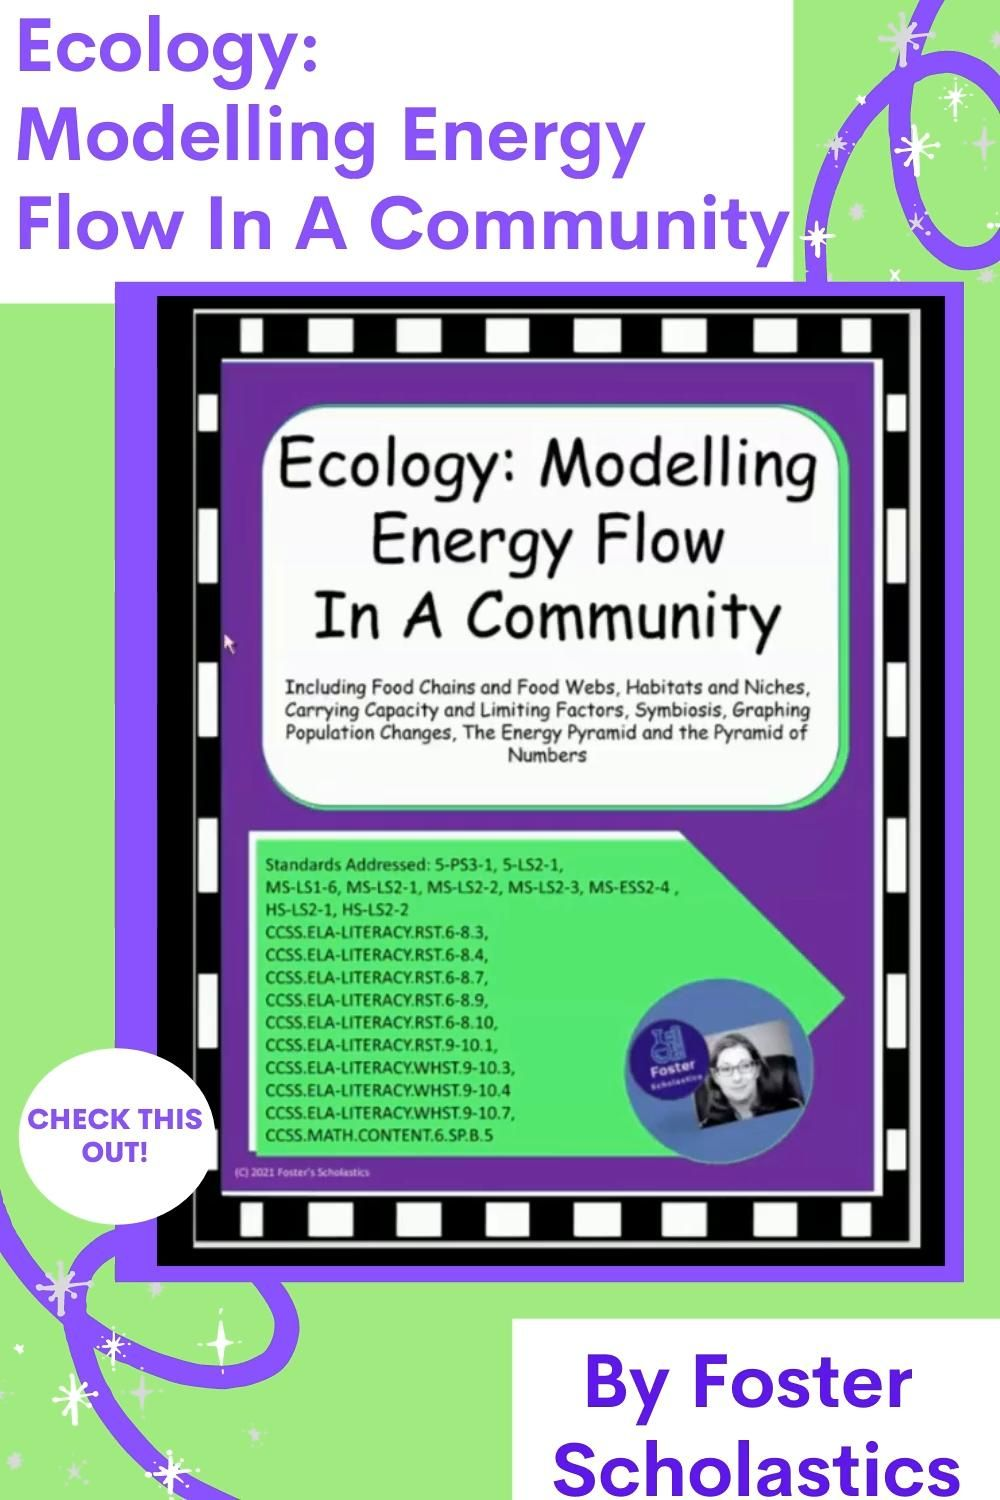 Ecology Modelling Energy Flow In A Community Video Video In 2021 Elementary Resources Teacher Help Science Curriculum [ 1500 x 1000 Pixel ]